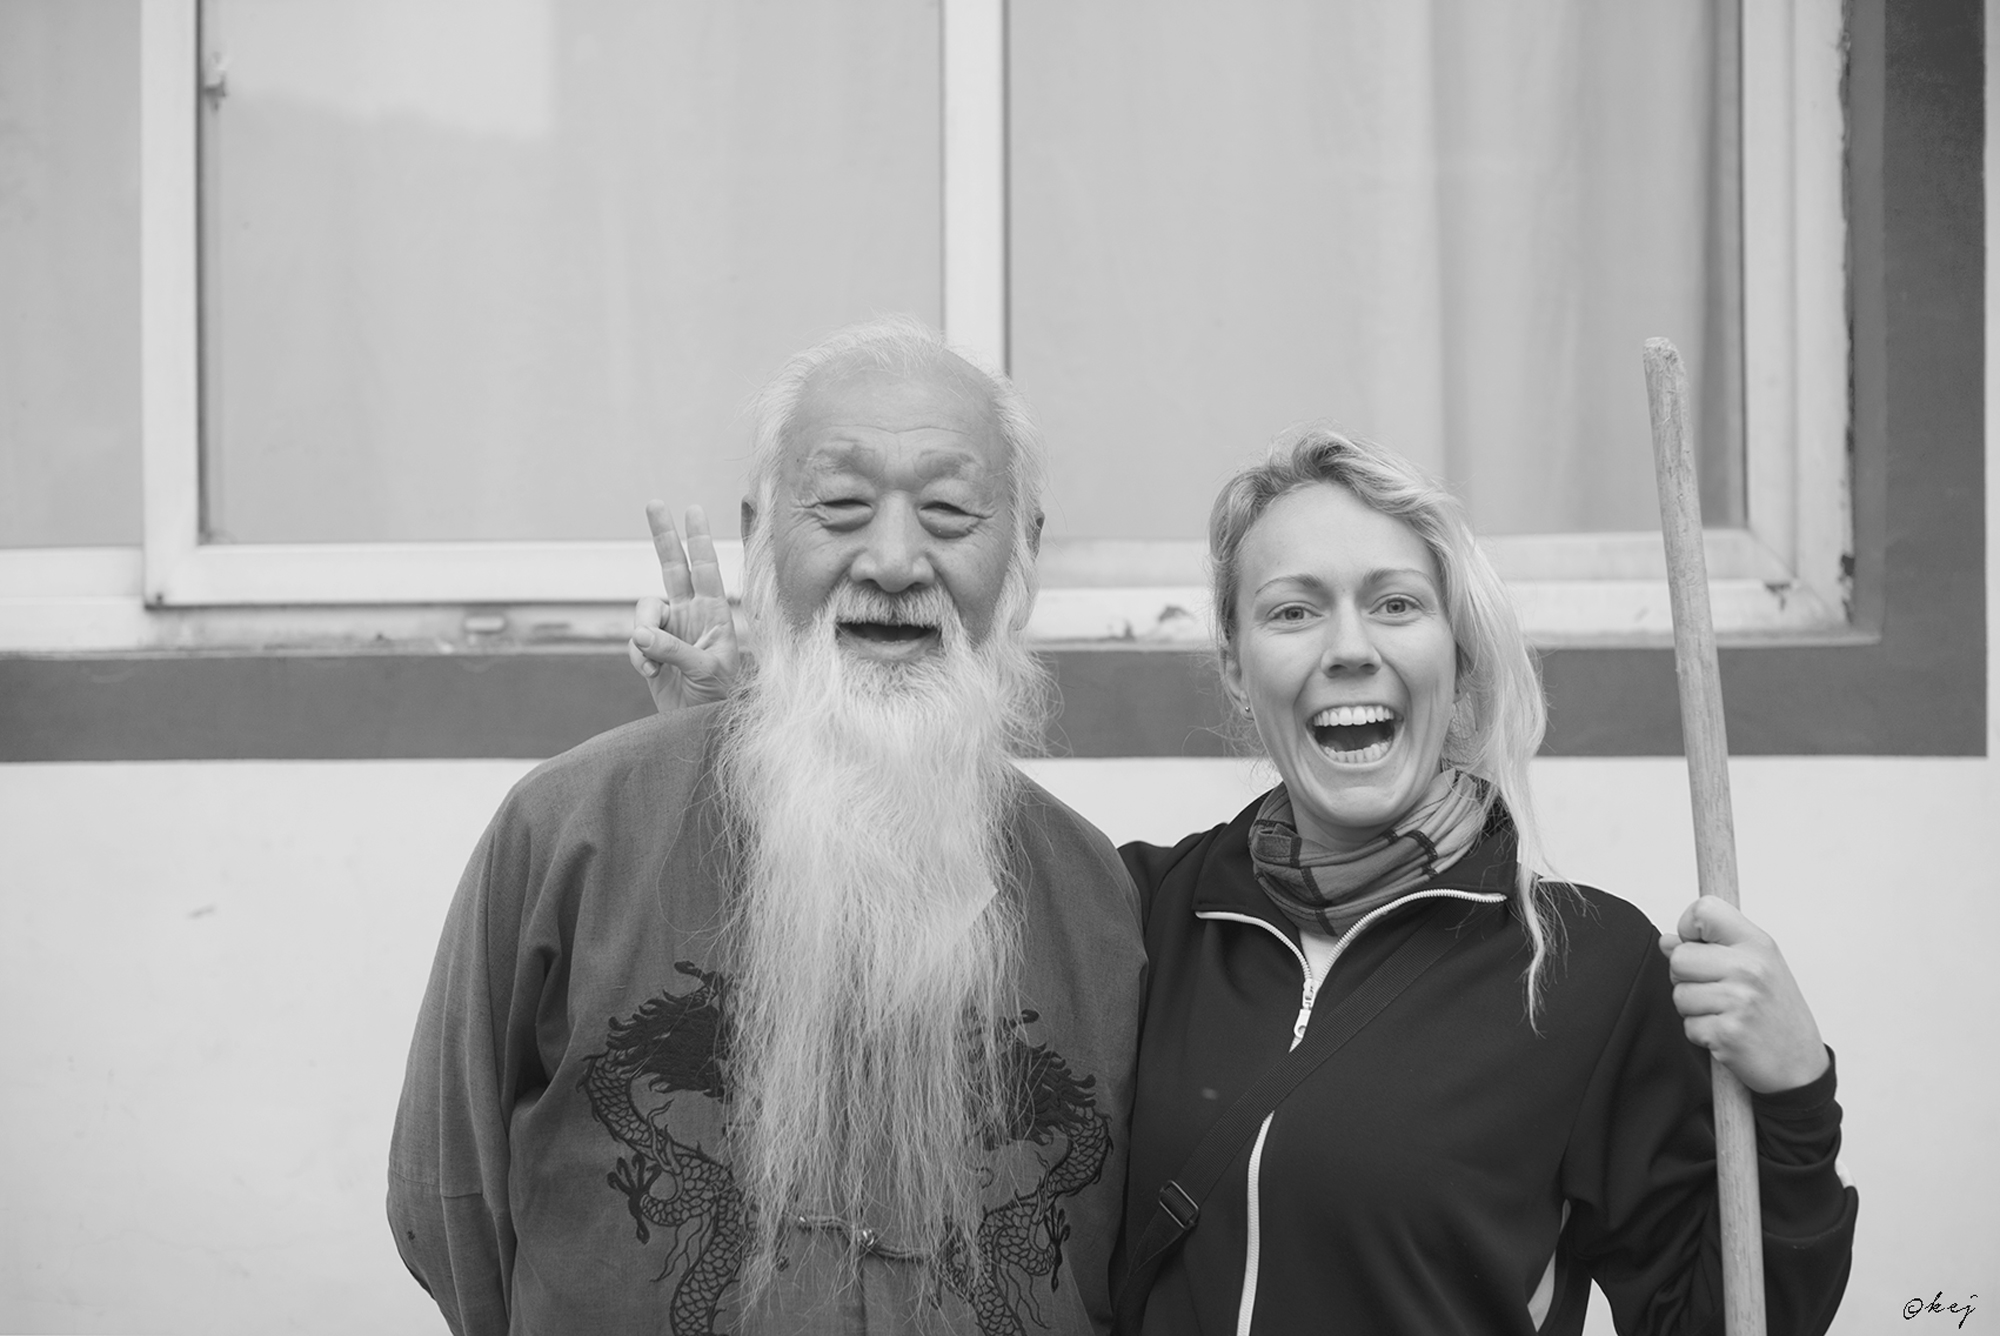 Sanshifu & Evelina Being a gargantuan Tarantino fan, I almost fainted when I saw our tai chi master - a 76 year old version of Pai Mei.